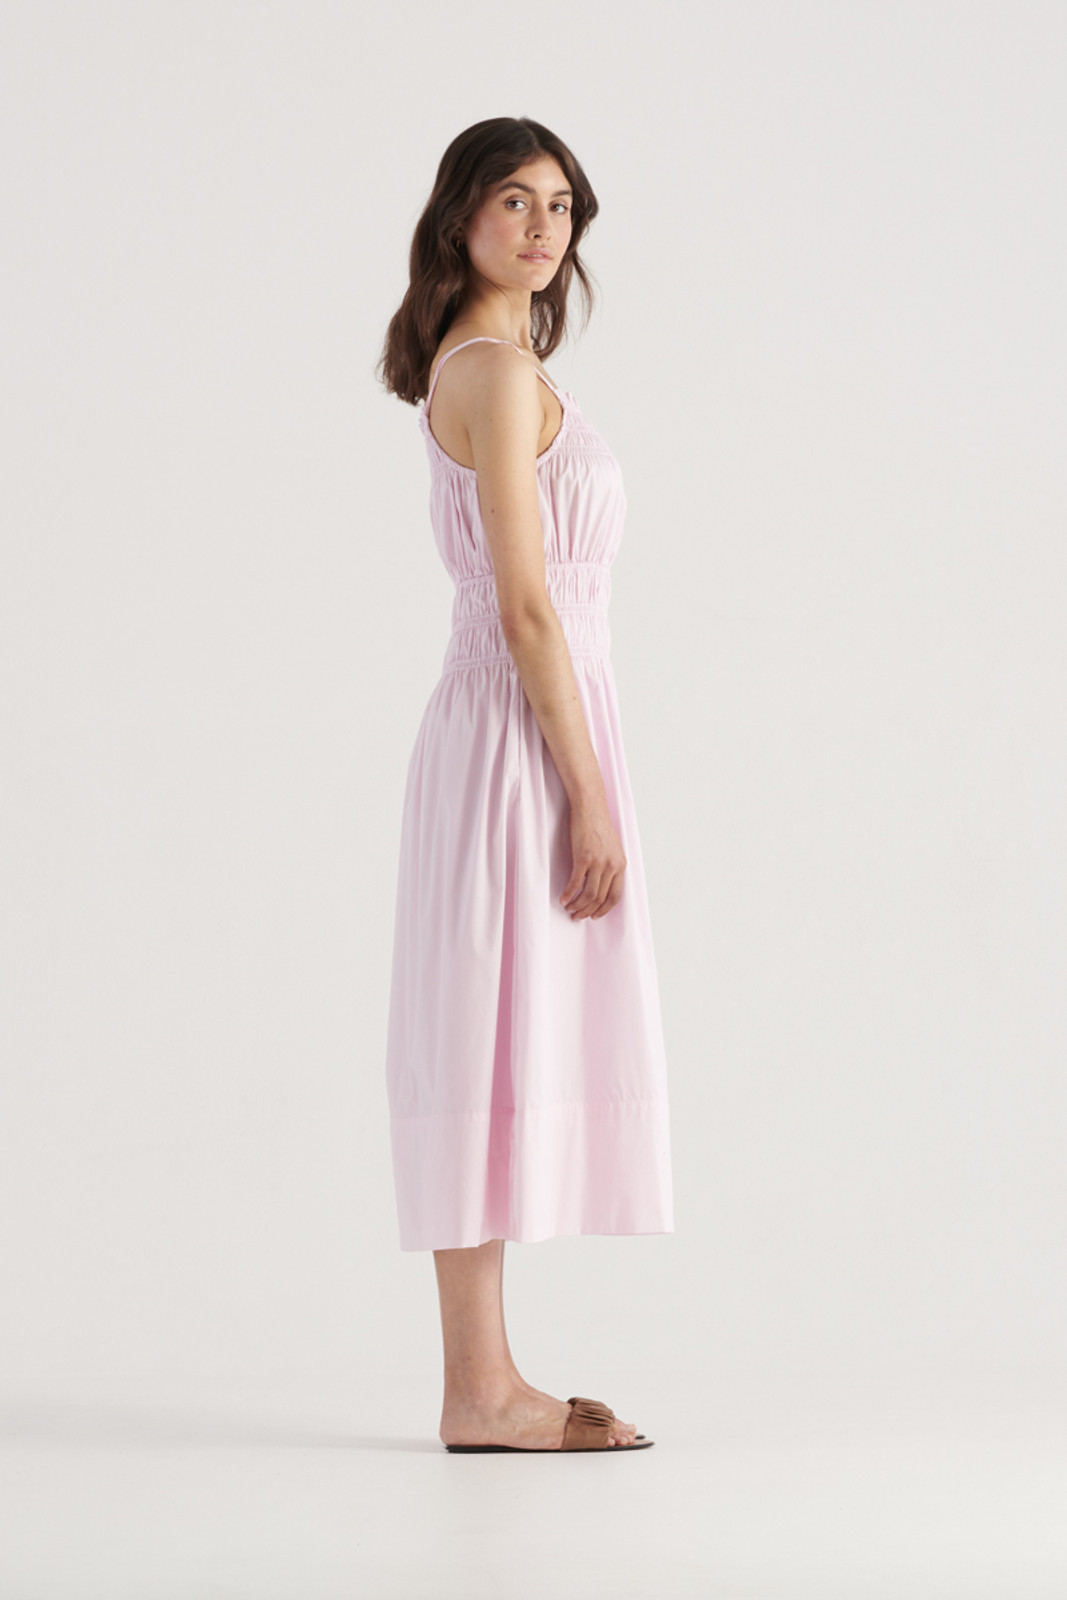 Elka Collective WomensThrive Dress Lilac  3